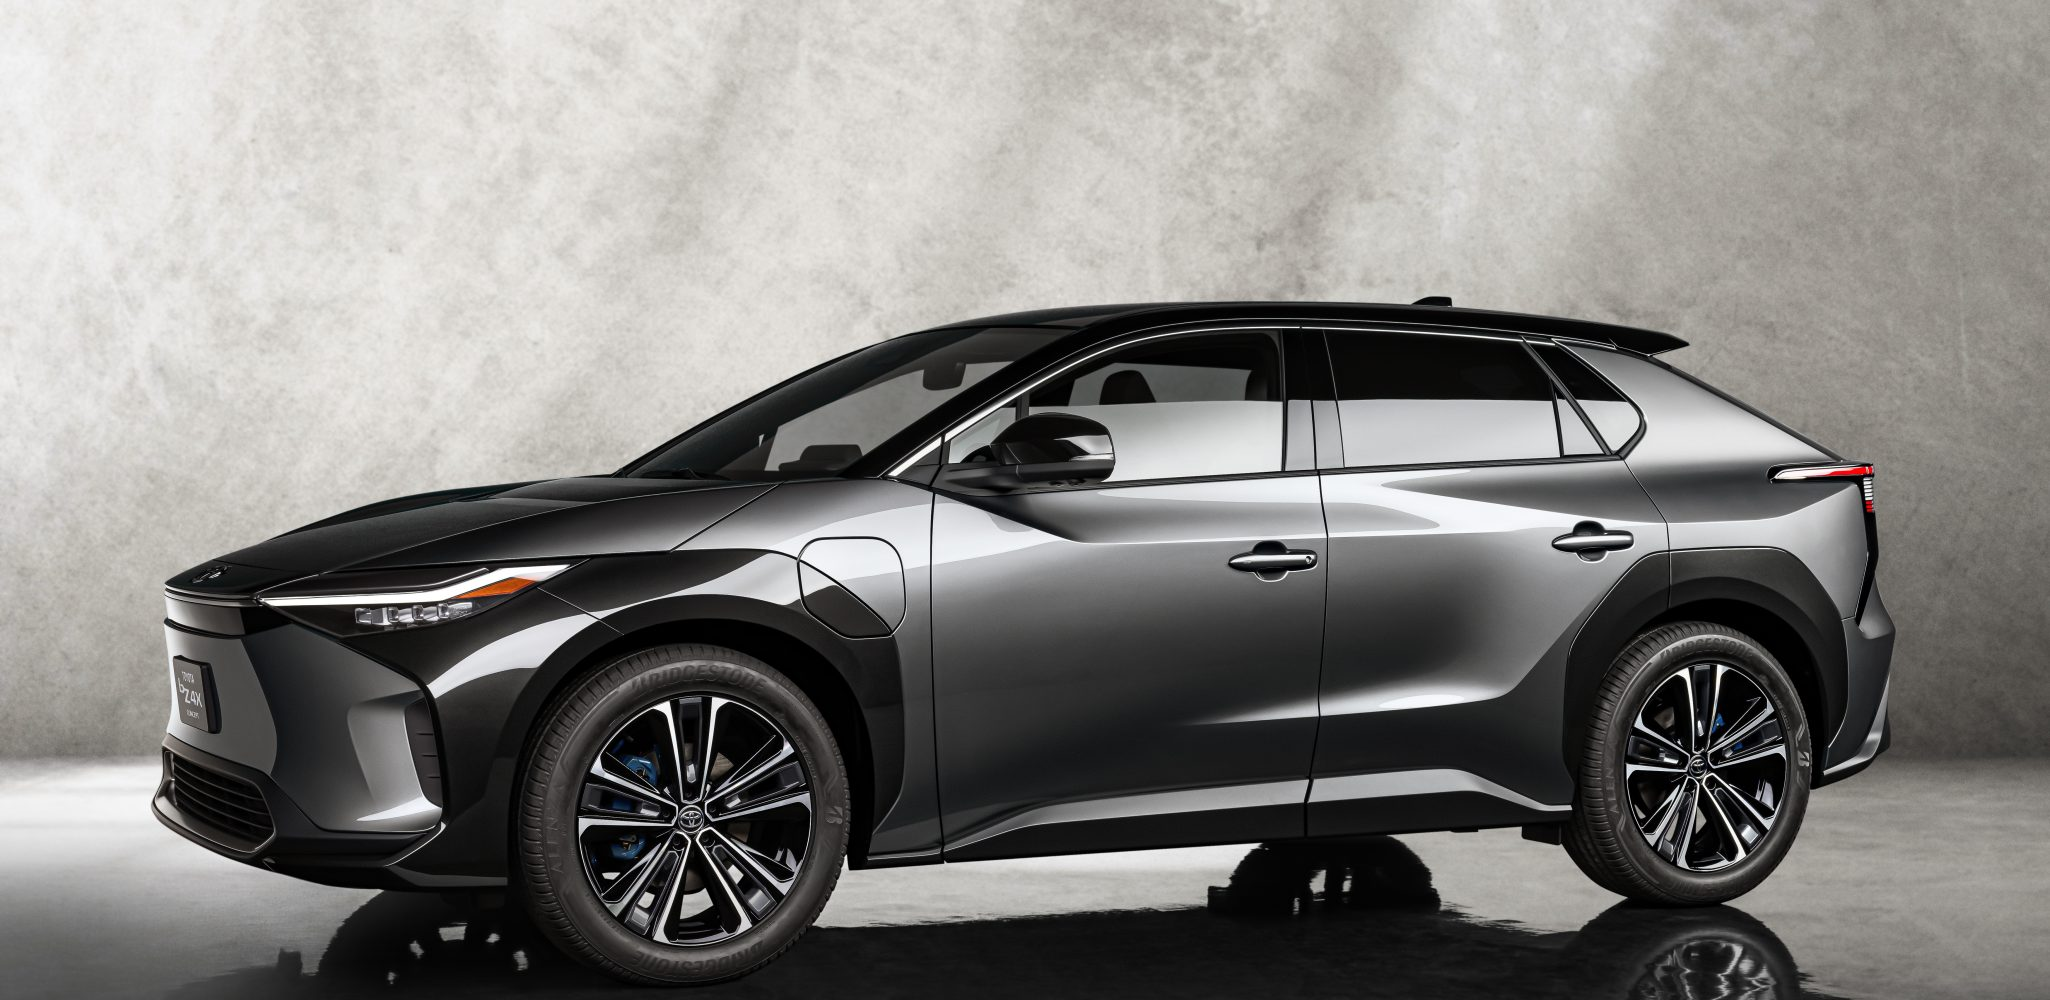 Toyota Debuts All-Electric SUV Concept in U.S.